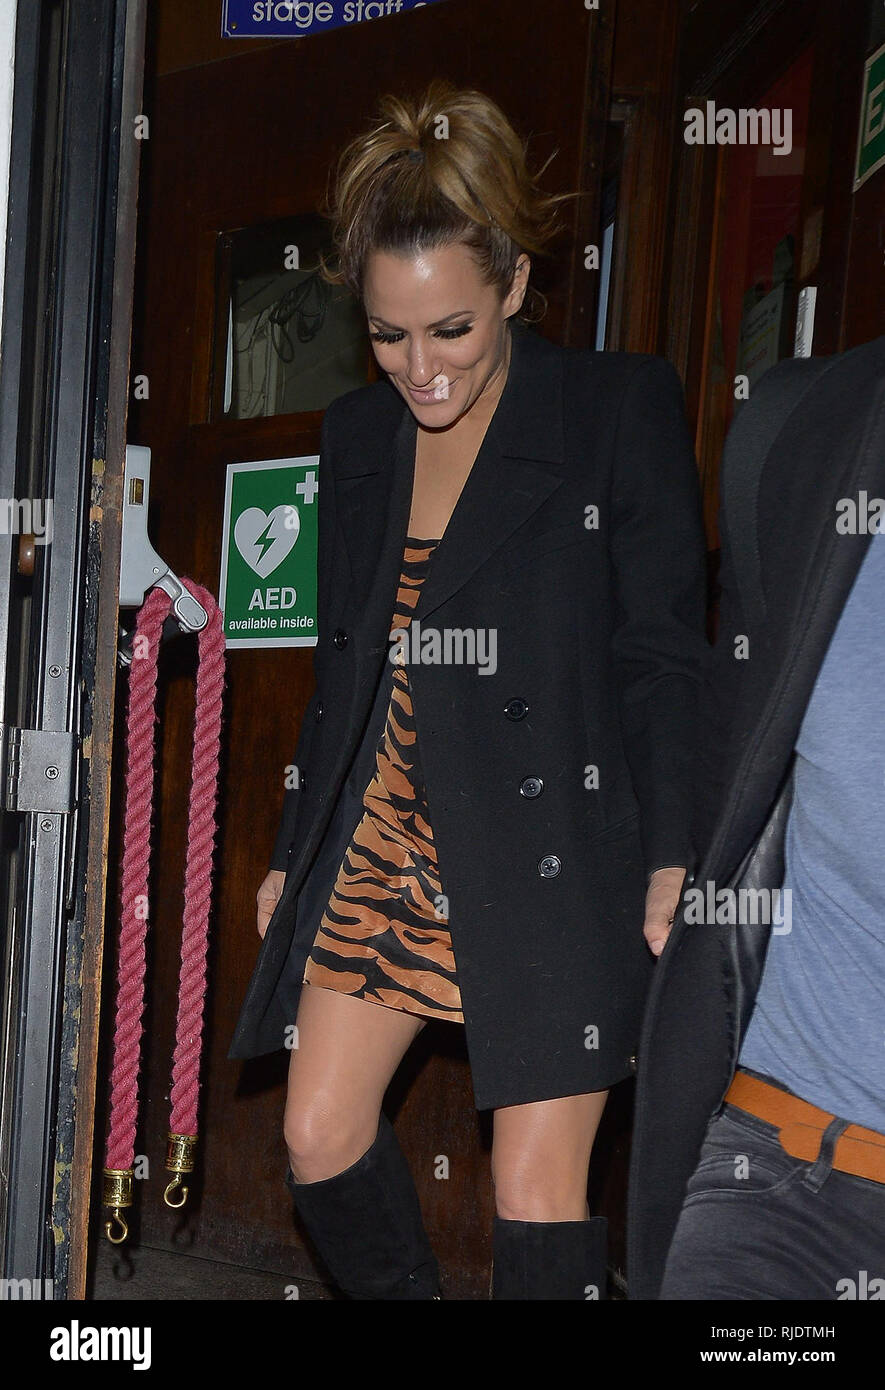 53afe9afa8d6a9 Celebrities leaving the Phoenix Theatre in London after Caroline Flack's  final night performance in 'Chicago